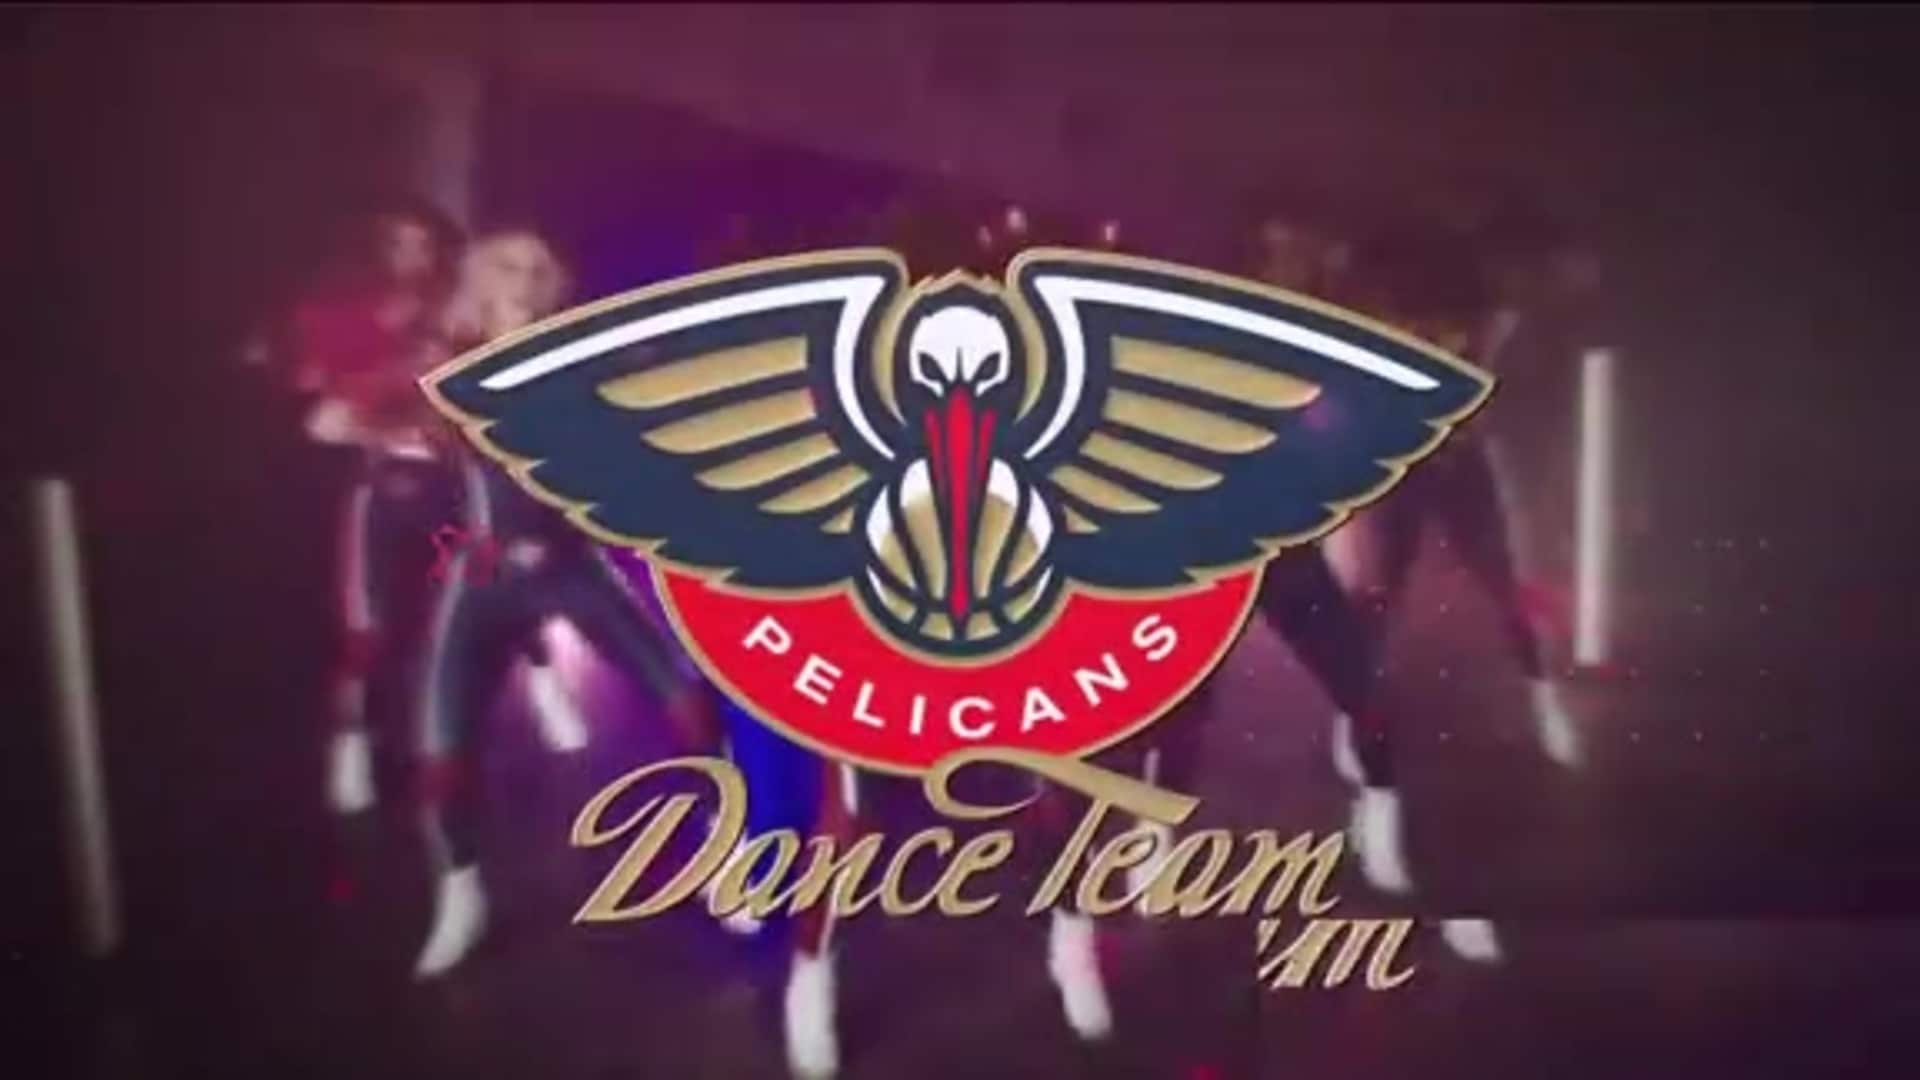 Entertainment: Pelicans Dance Team 2nd quarter performance - January 6 vs. Utah Jazz